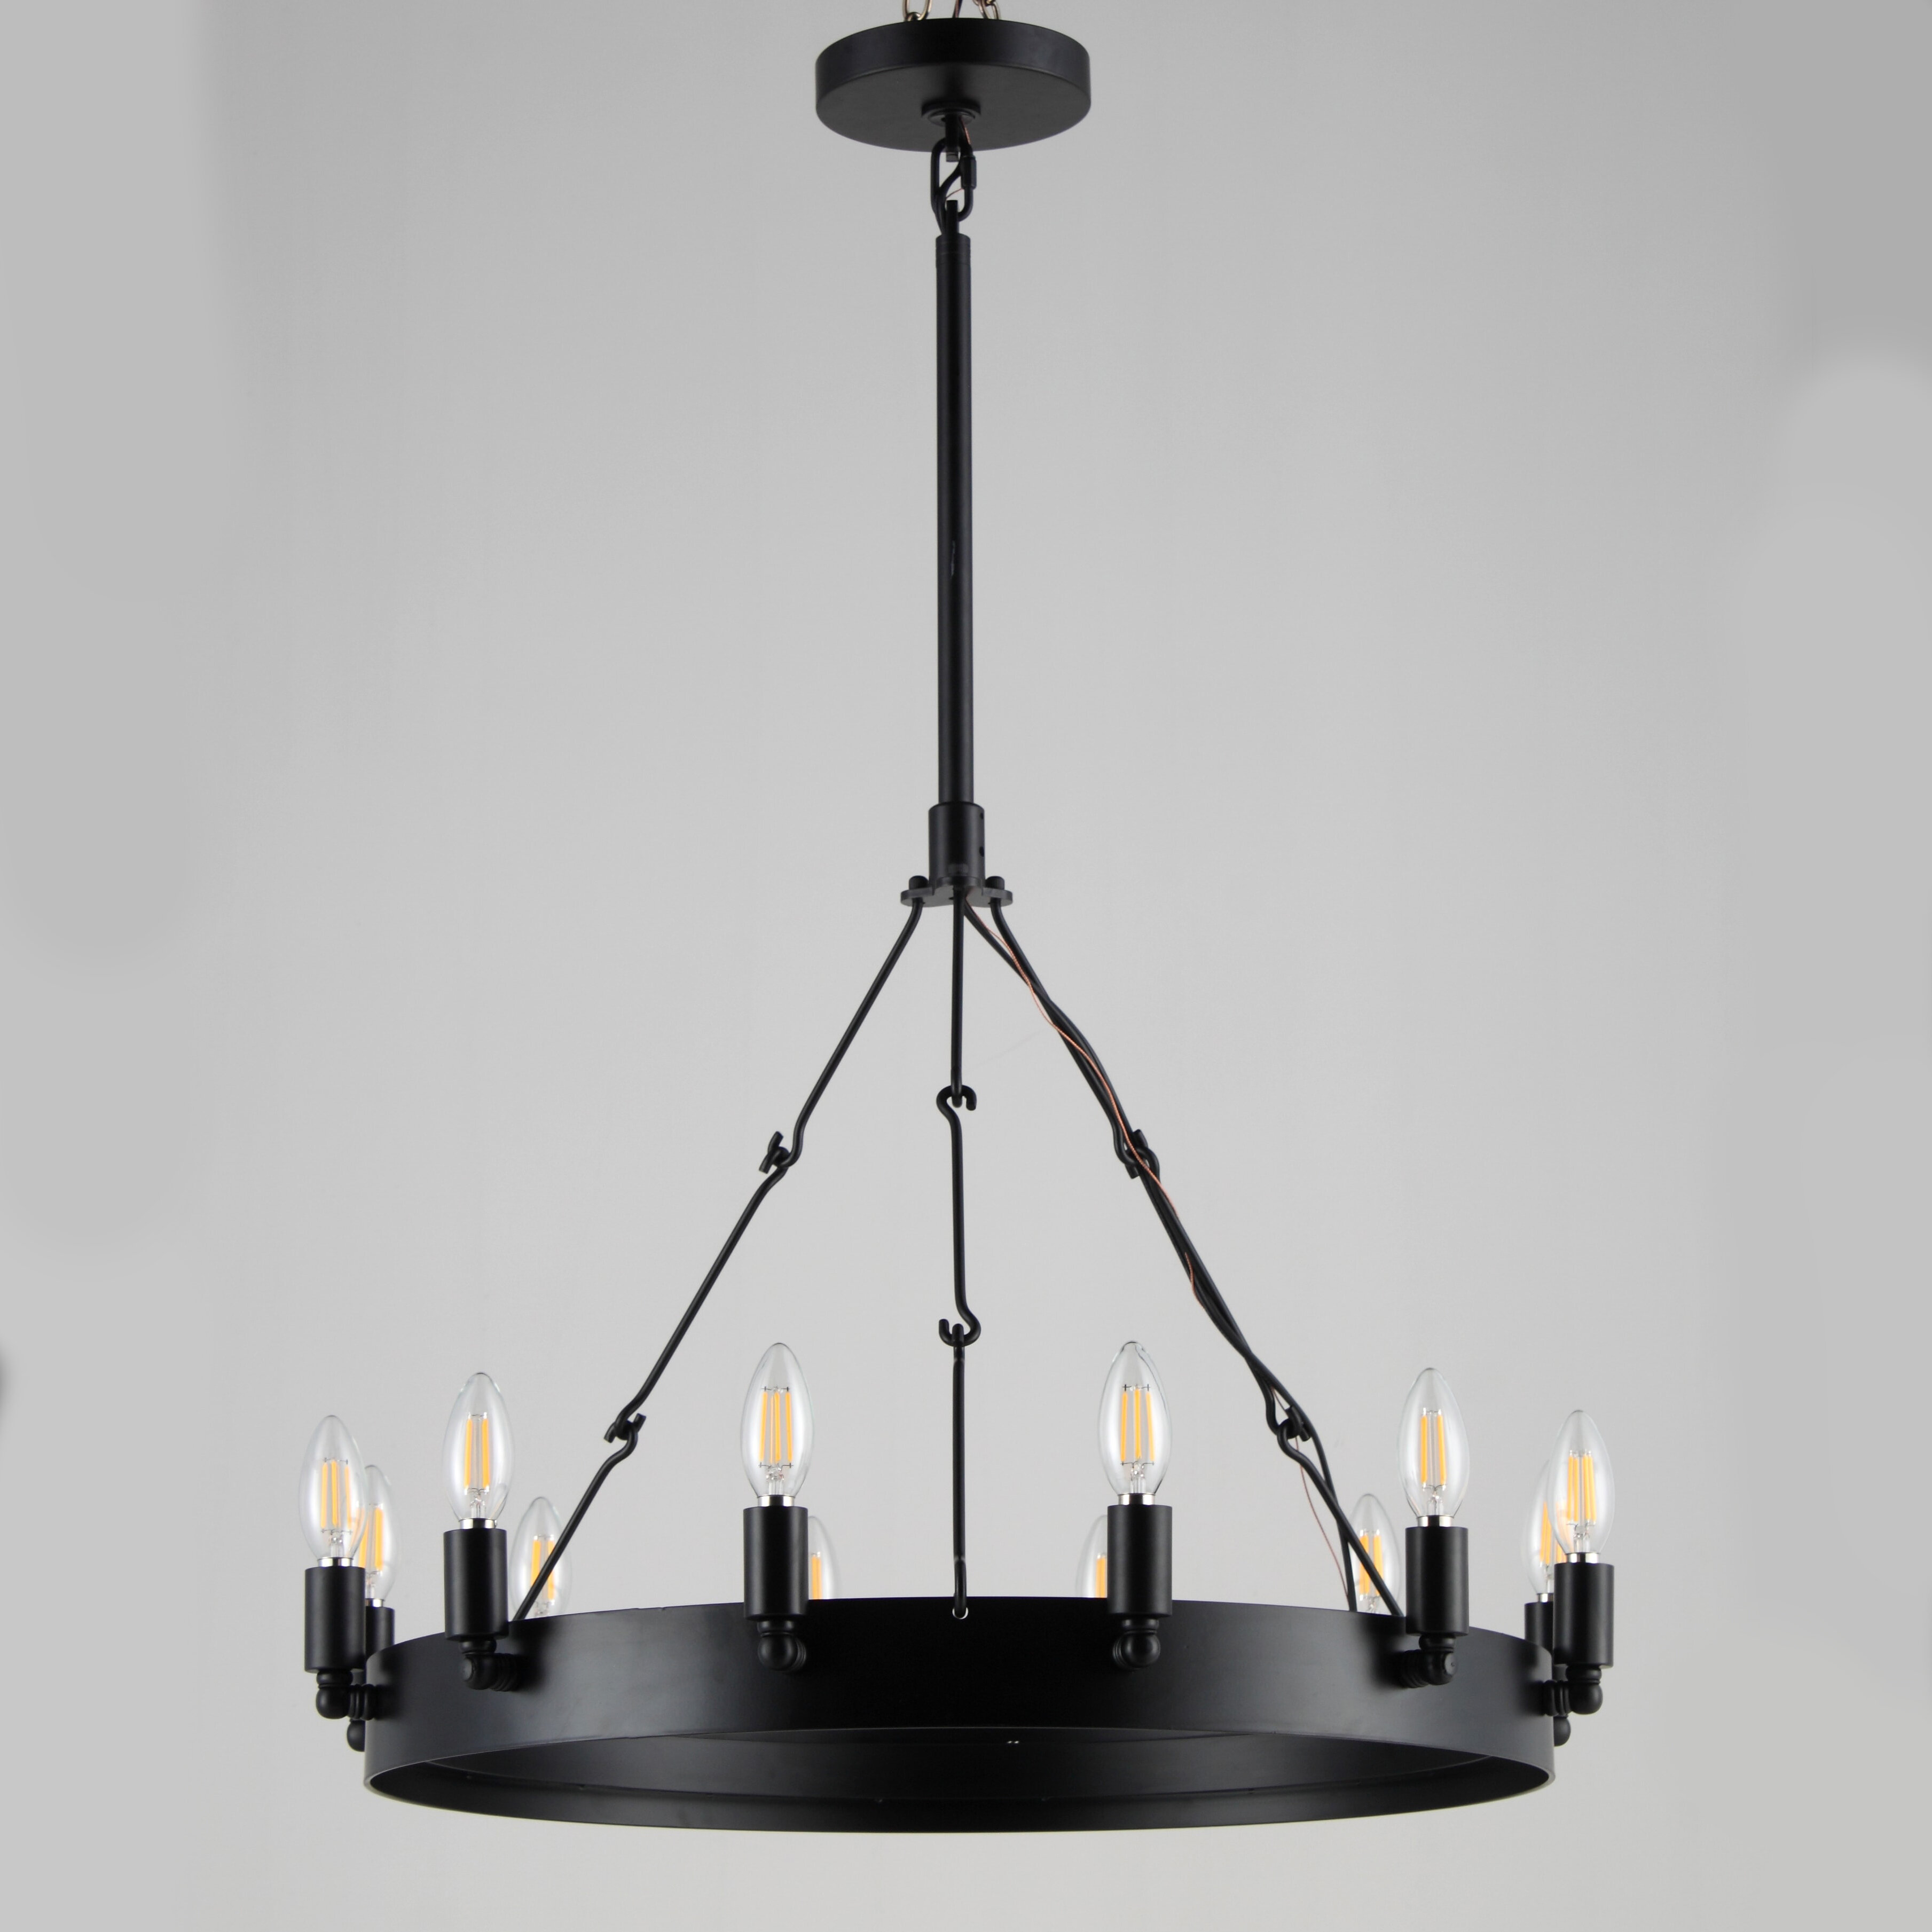 Gracie Oaks Preisser 12 Light Unique Statement Wagon Wheel Chandelier With Wrought Iron Accents Wayfair